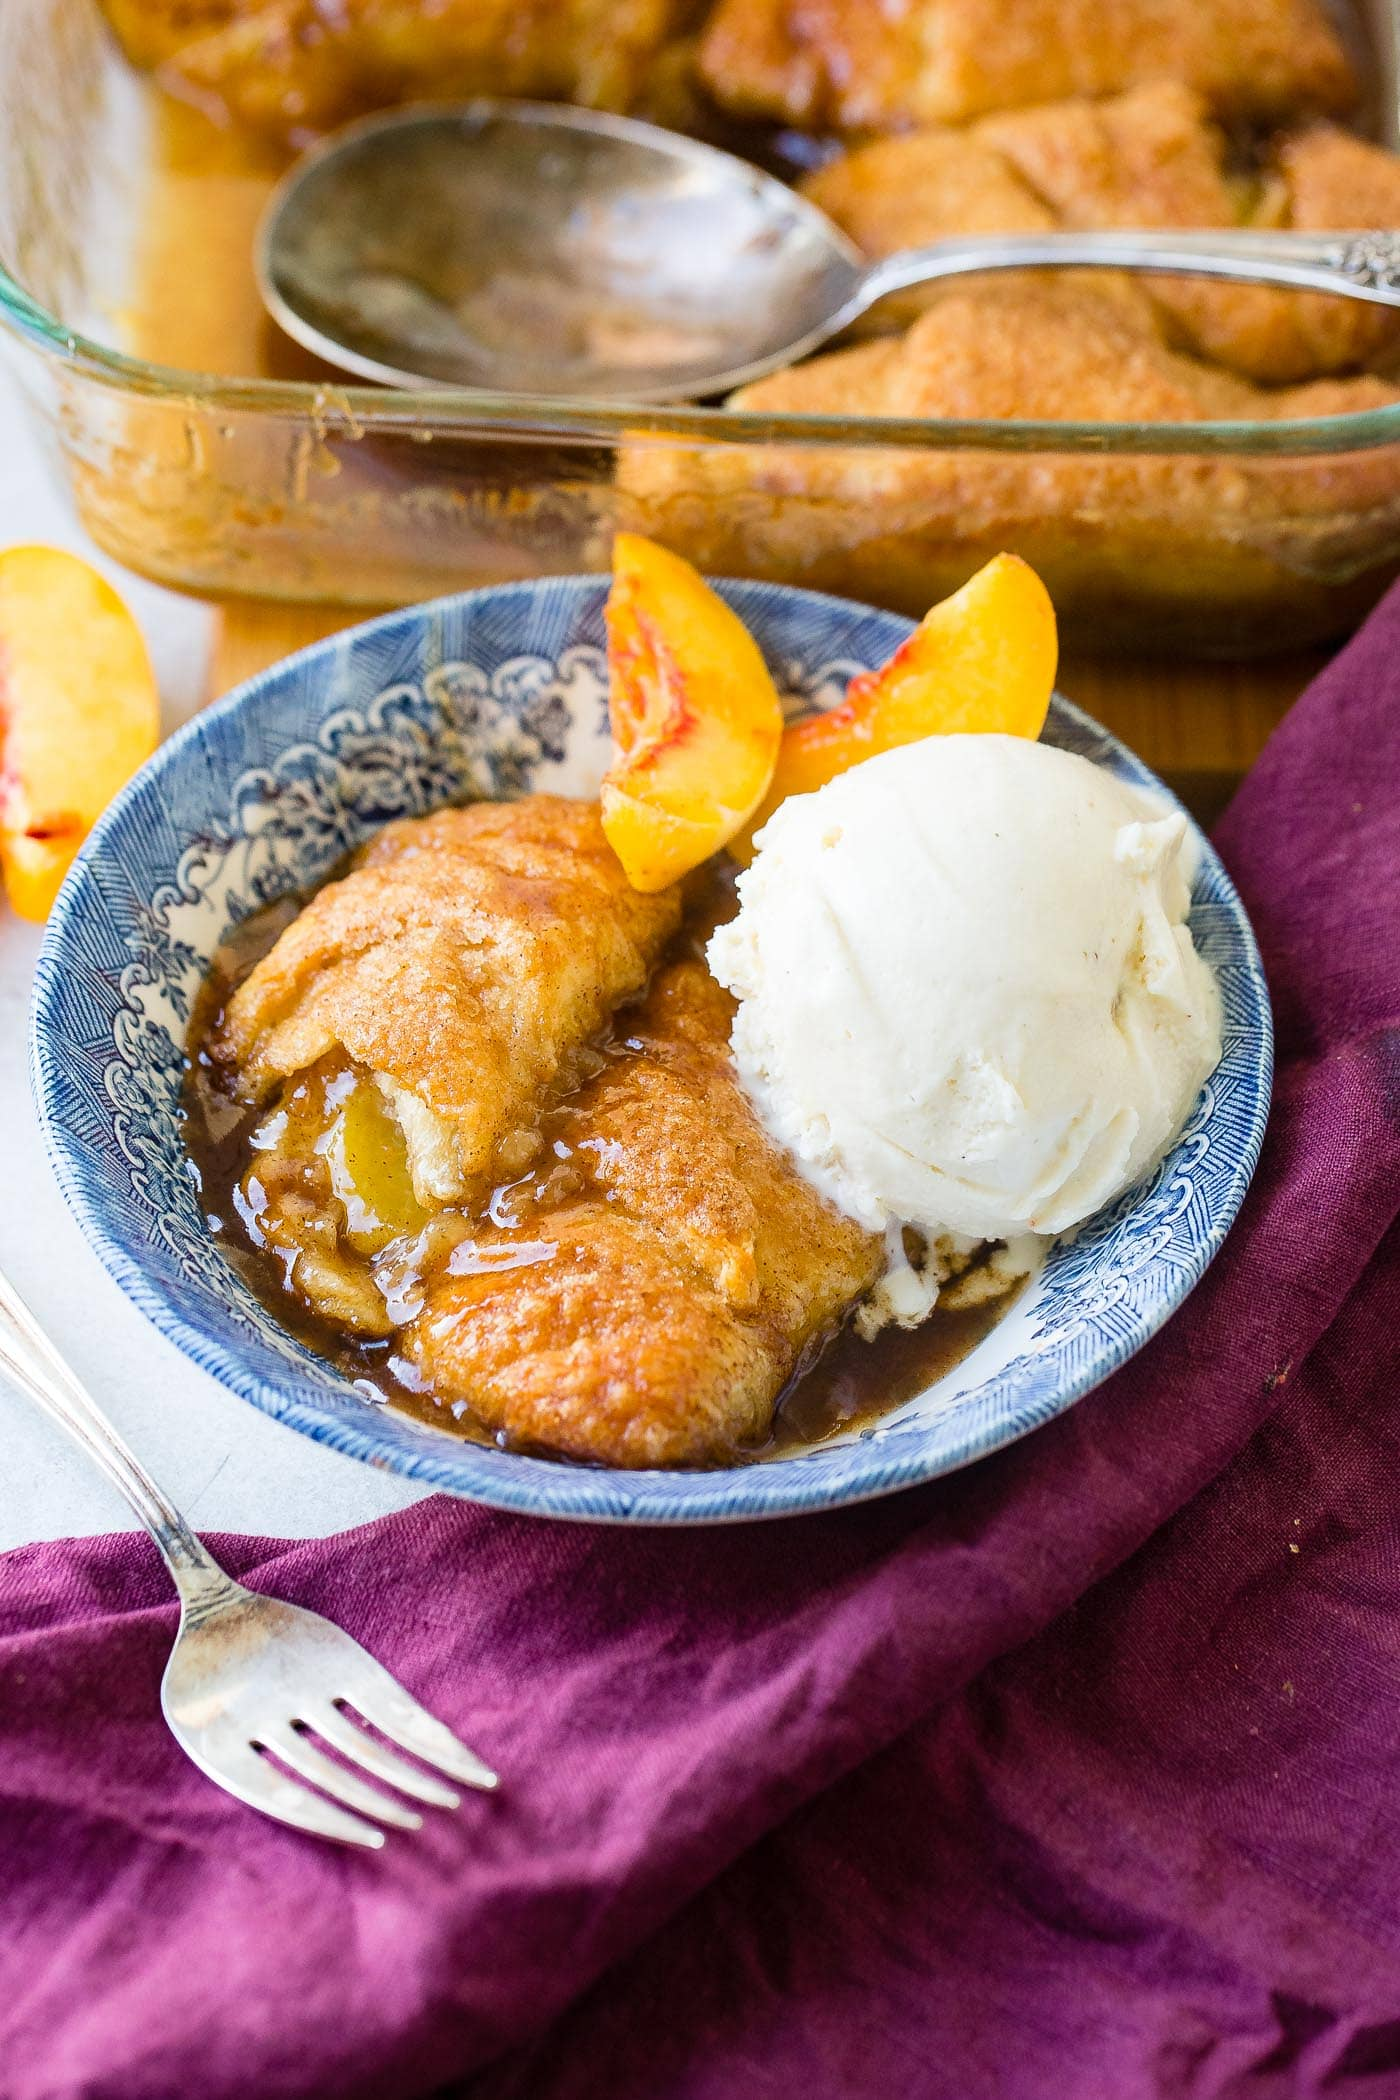 a blue dish on a purple napkin with two peach dumplings and a scoop of creamy vanilla ice cream